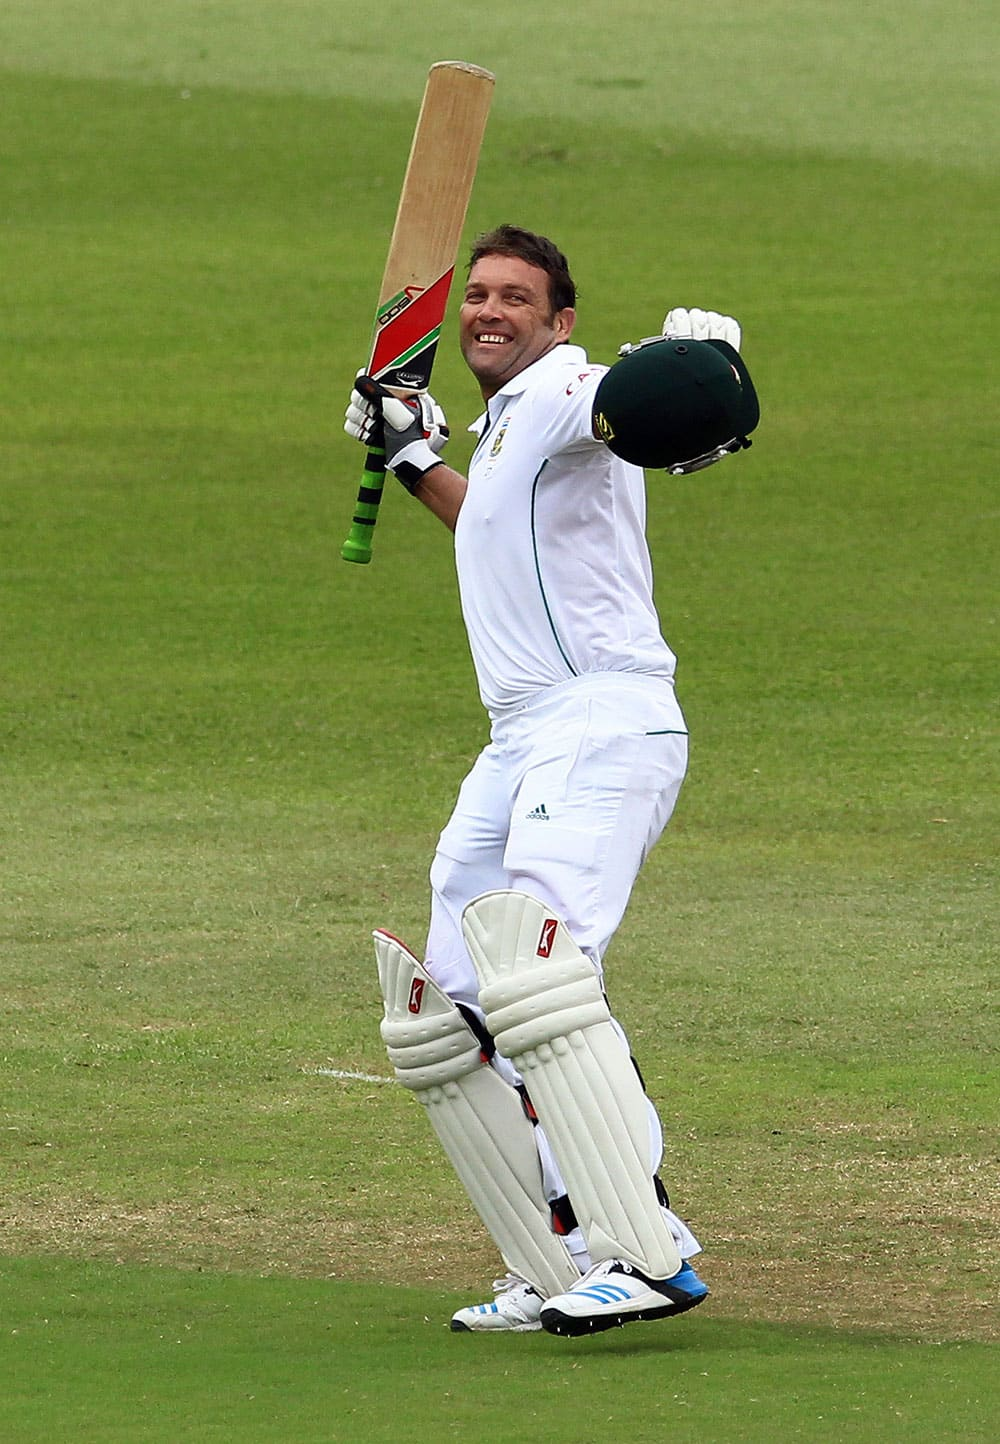 SOUTH AFRICA`S BATSMAN JACQUES KALLIS CELEBRATES HIS CENTURY ON THE FORTH DAY OF THEIR CRICKET TEST MATCH AGAINST INDIA AT KINGSMEAD STADIUM IN DURBAN, SOUTH AFRICA.